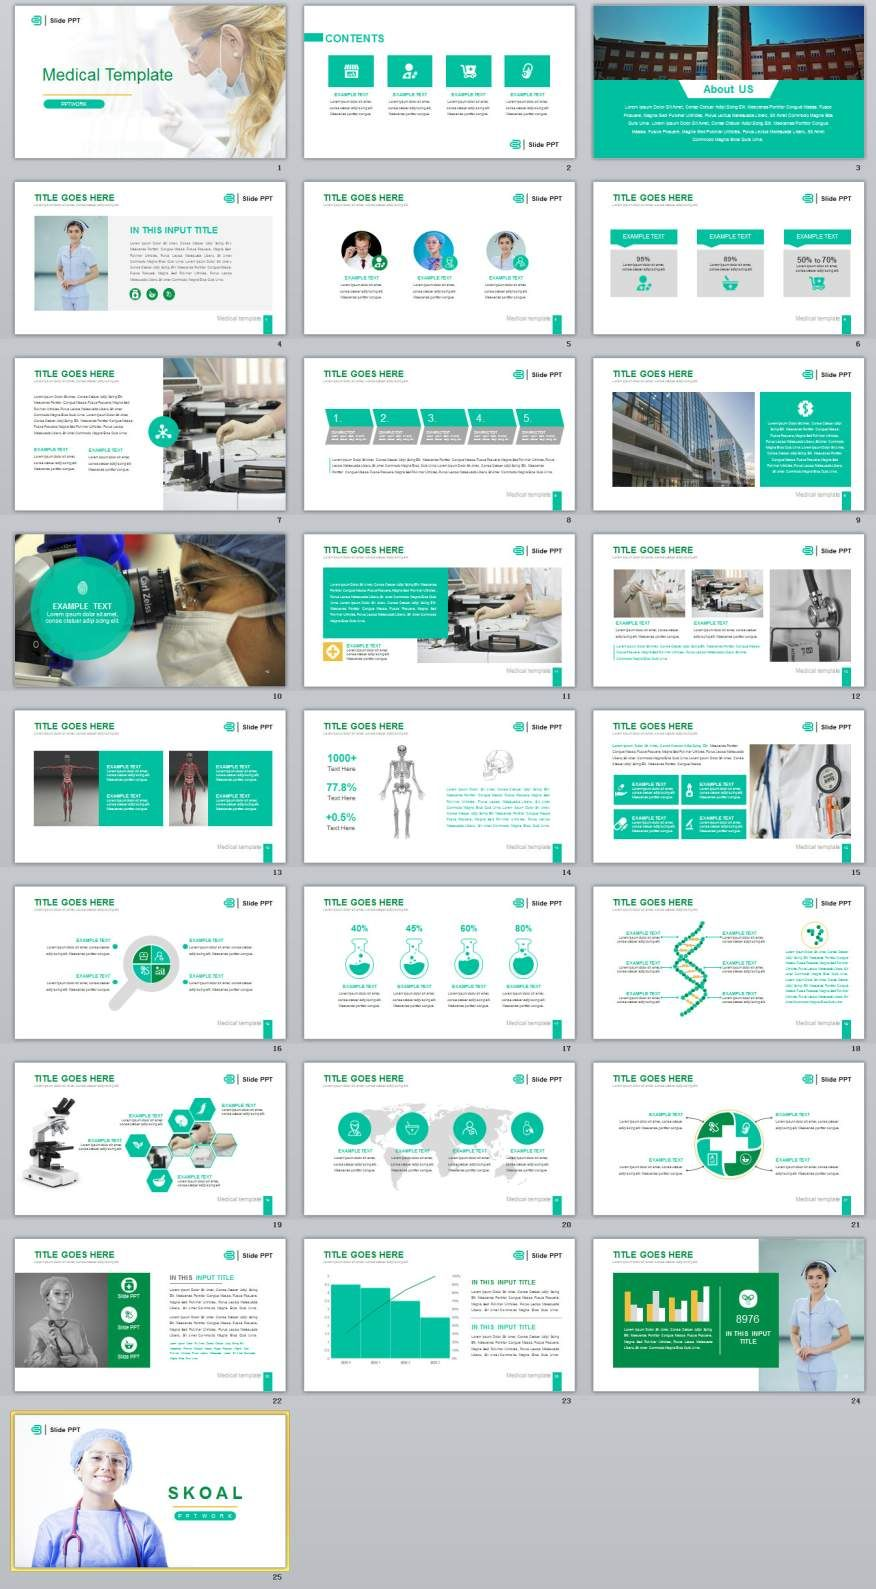 Best Medical Industry Powerpoint Templates  Layout Design